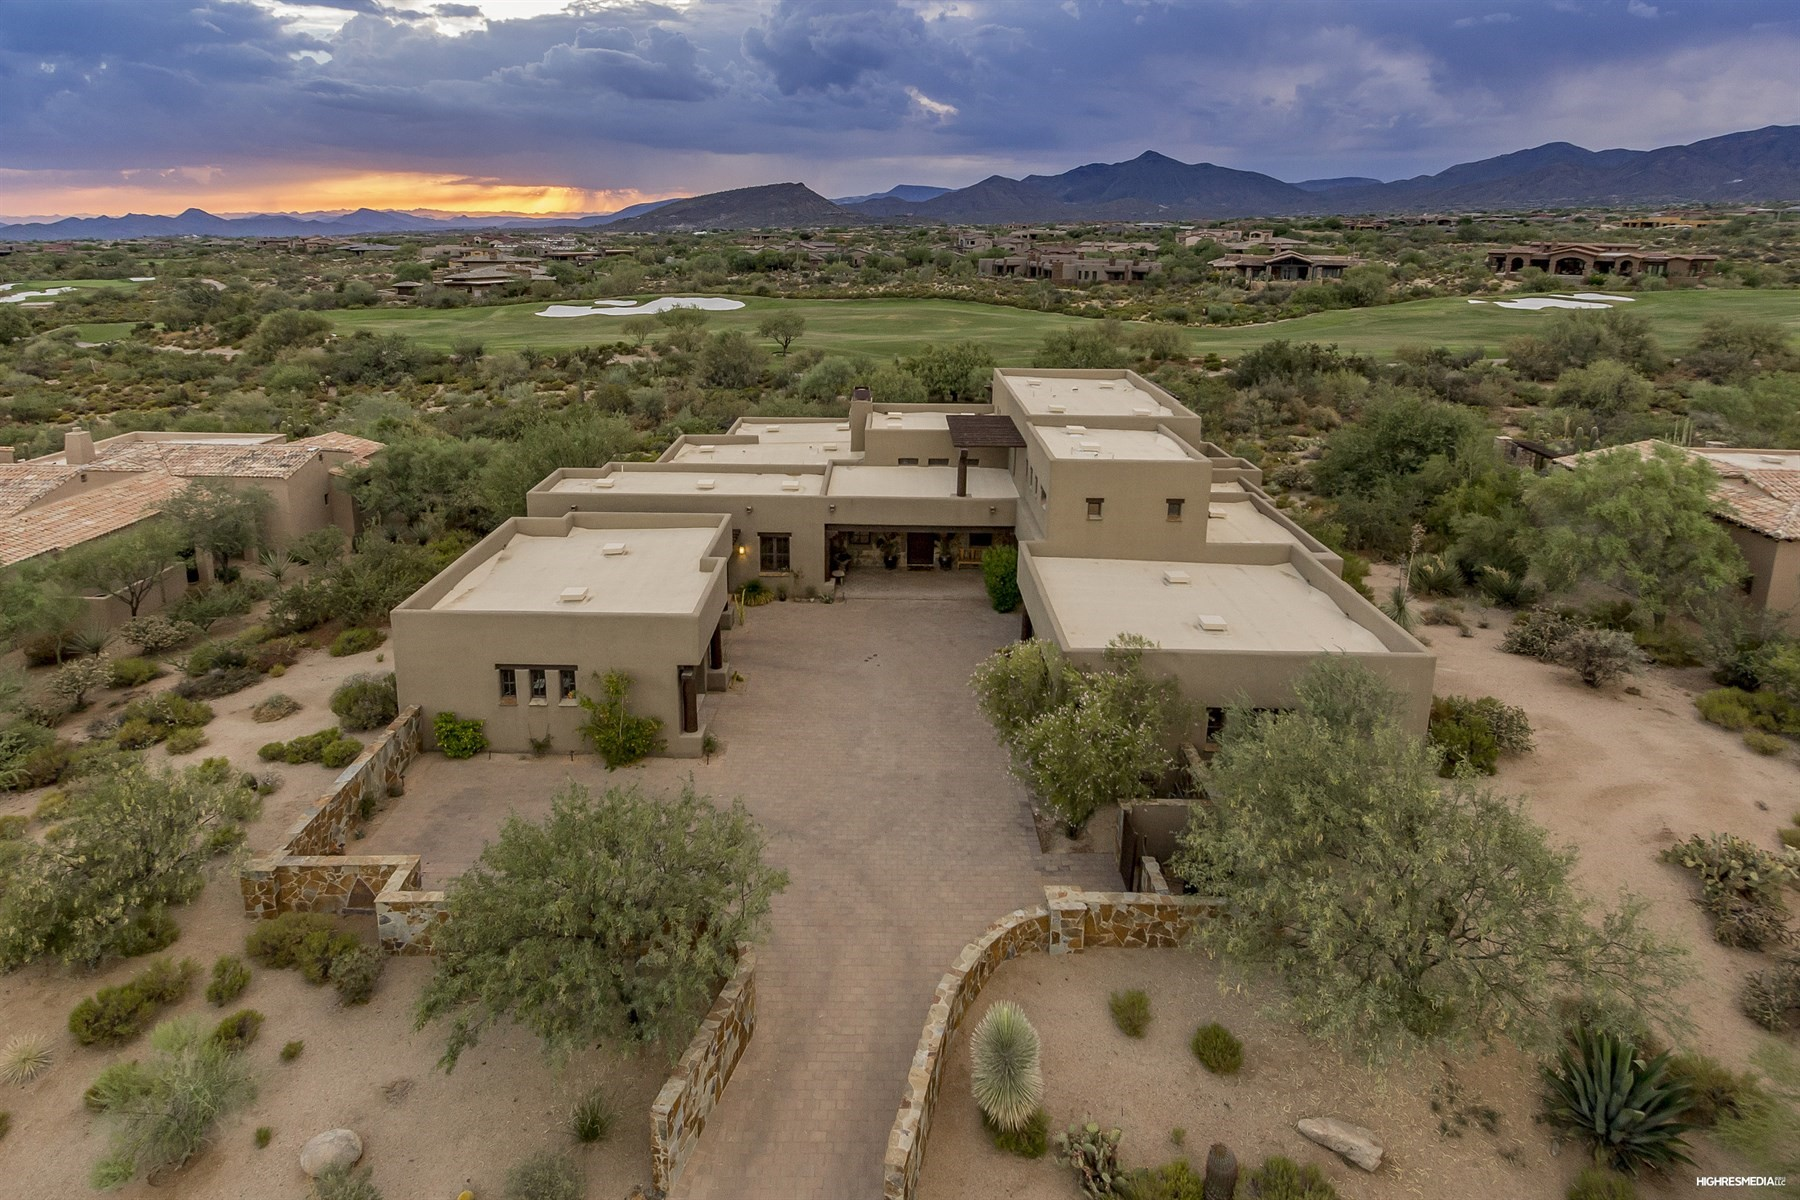 Single Family Home for Sale at Custom residence Perched above the award-winning Mirabel Golf course 10970 E Wildcat Hill Rd, Scottsdale, Arizona, 85262 United States